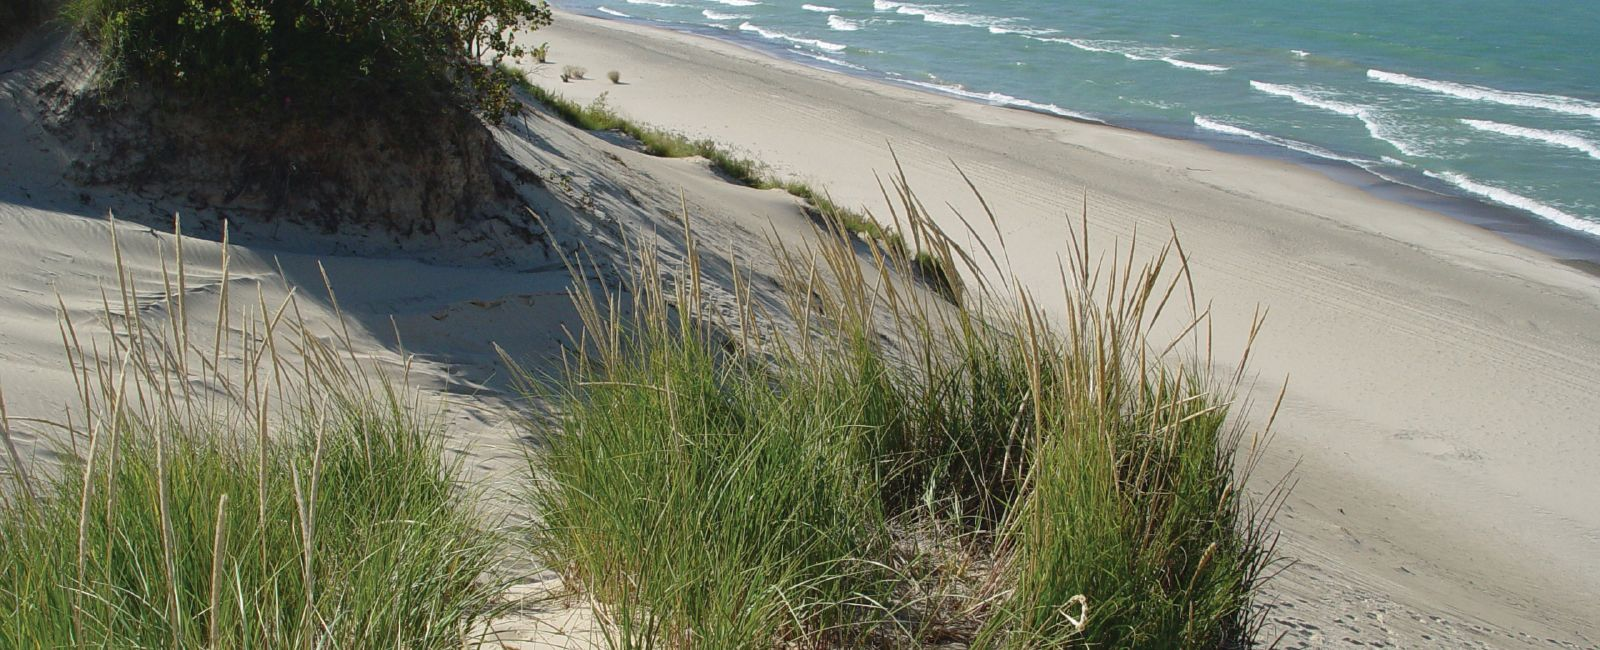 Sand dunes and sea grass along the shore of Lake Michigan in Indiana Dunes Country.